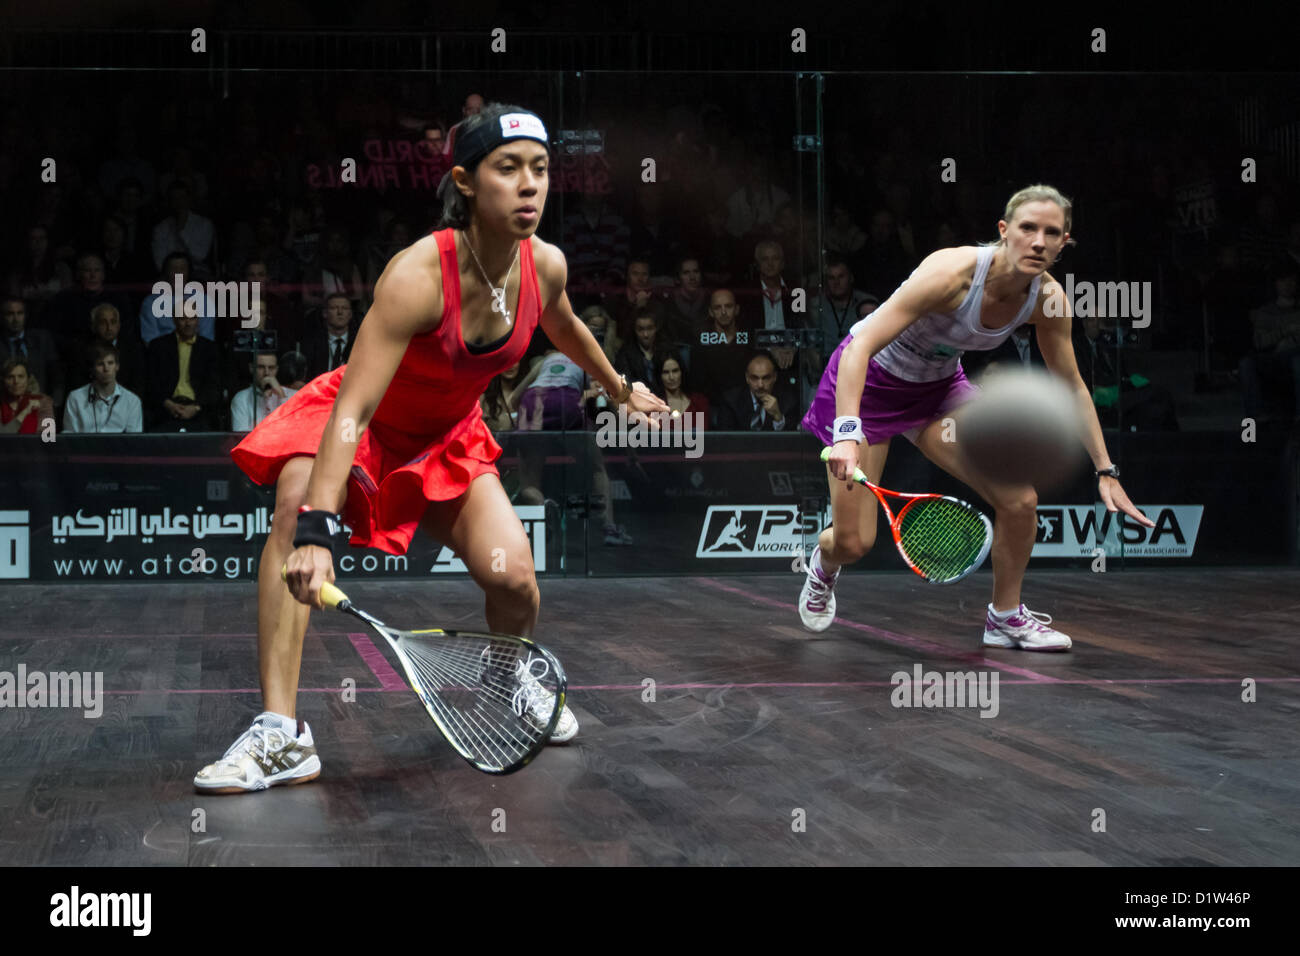 06.01.2013 London, England. World number 1 and reigning World Series champion Nicol David (Malaysia) and World number - Stock Image